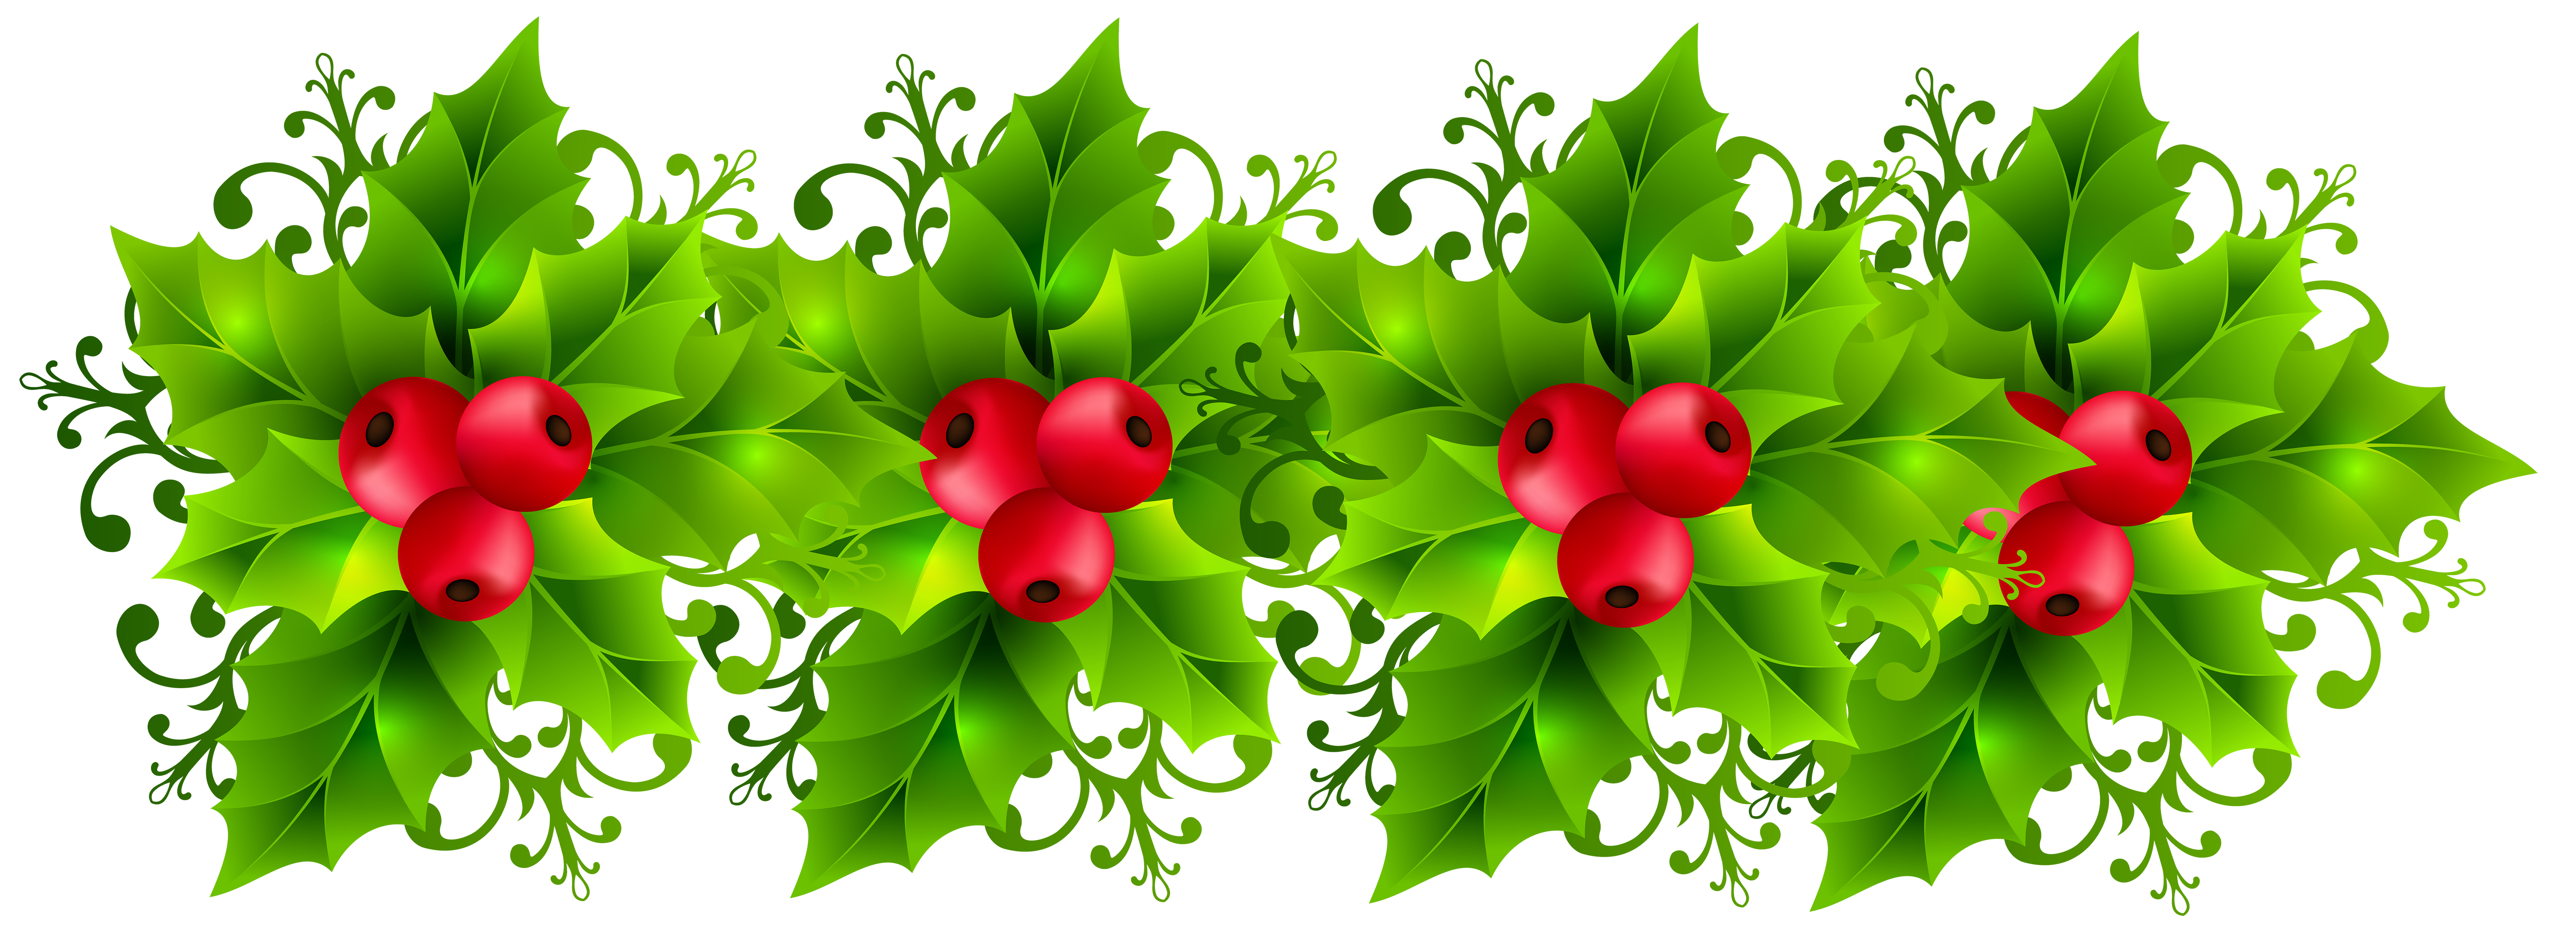 Free clipart christmas garland banner freeuse library Christmas Holly Garland Transparent PNG Clip Art Image | Gallery ... banner freeuse library